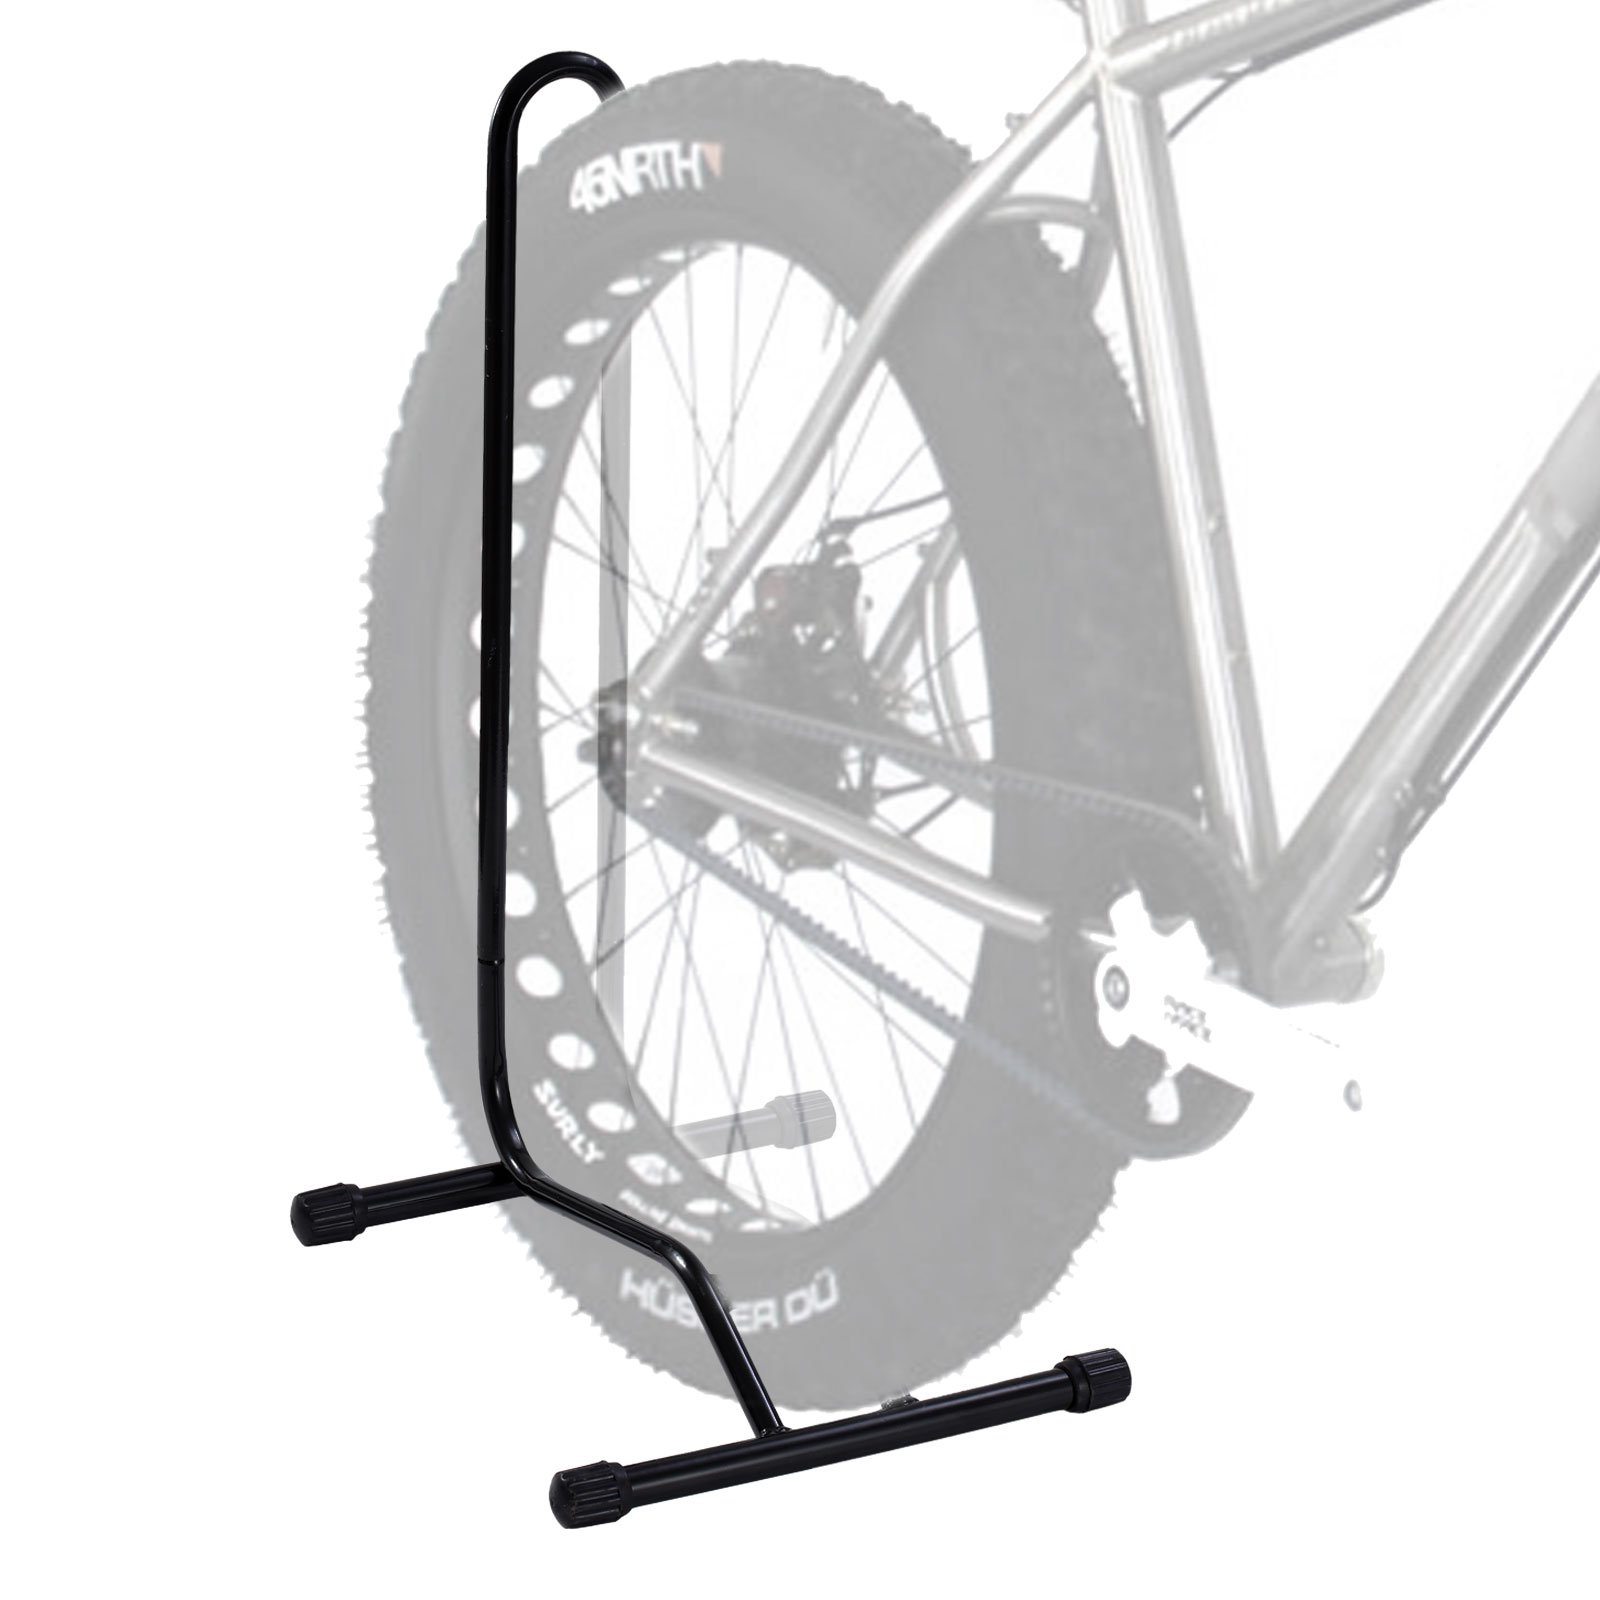 Parking Garage Bike Rack Buy 1 Bike Floor Parking Rack Storage Stand Heavy Duty Single